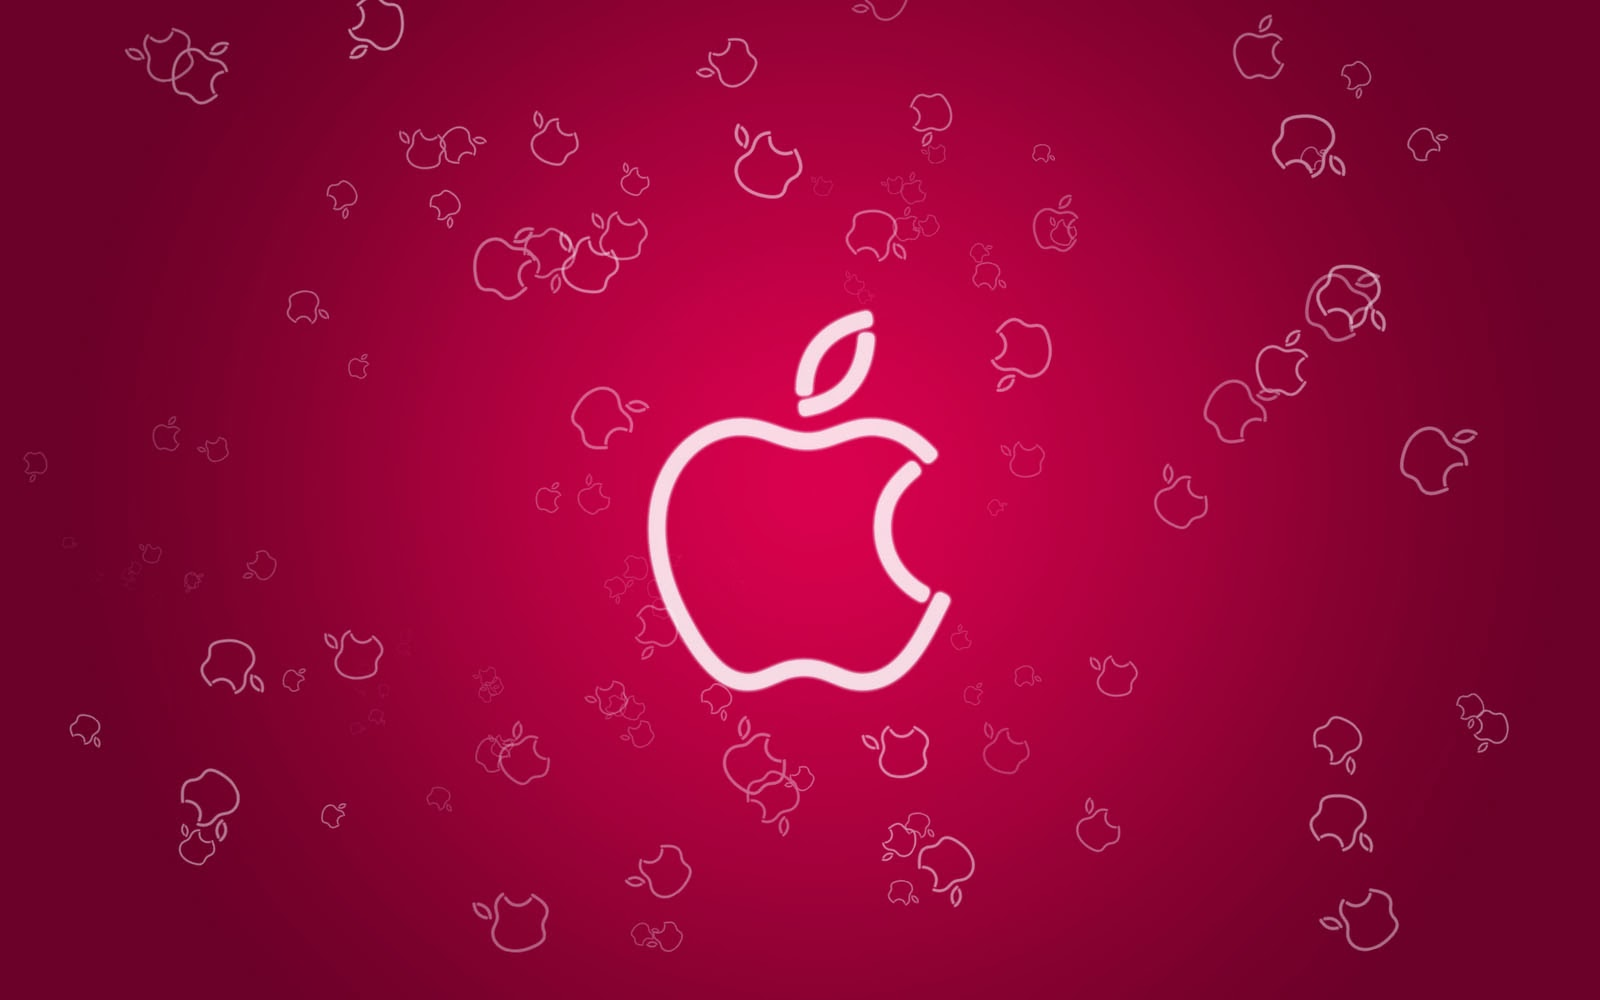 apple desktop wallpapers - top wallpaper desktop